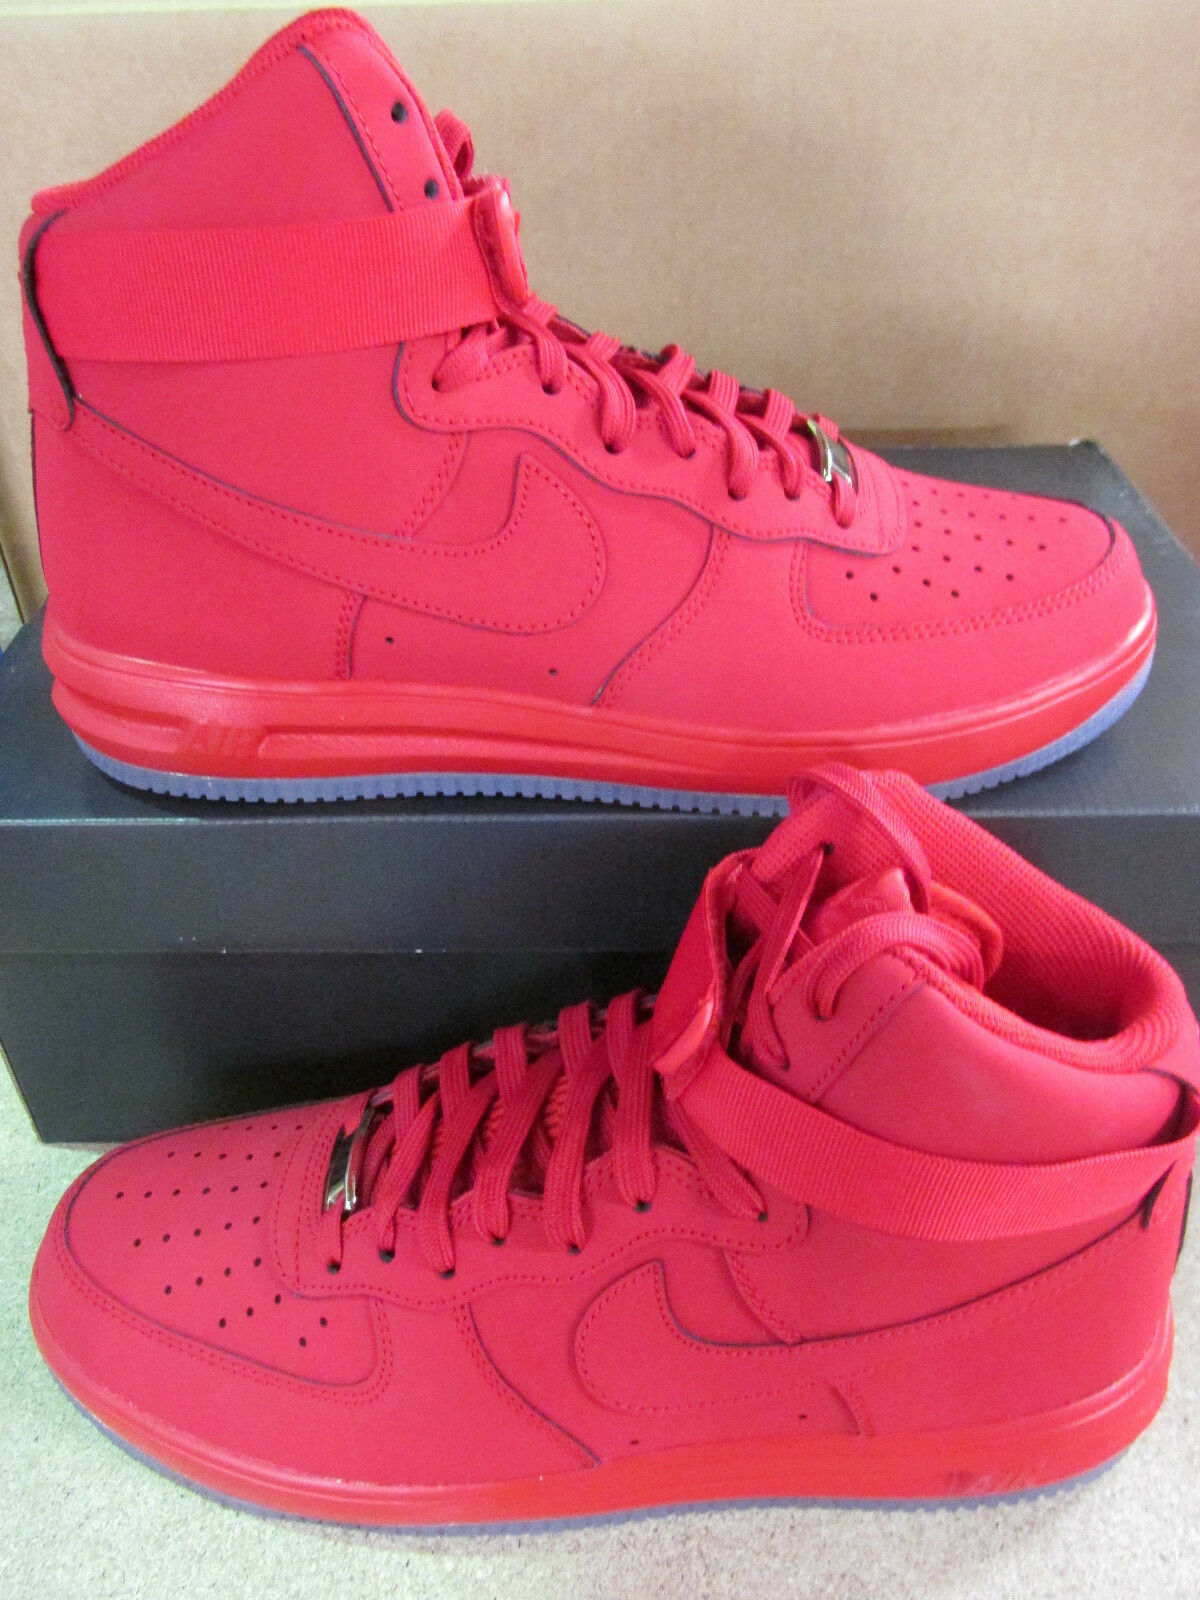 Nike lunar force 1 HI 14 mens hi top trainers 705436 600 sneakers shoes